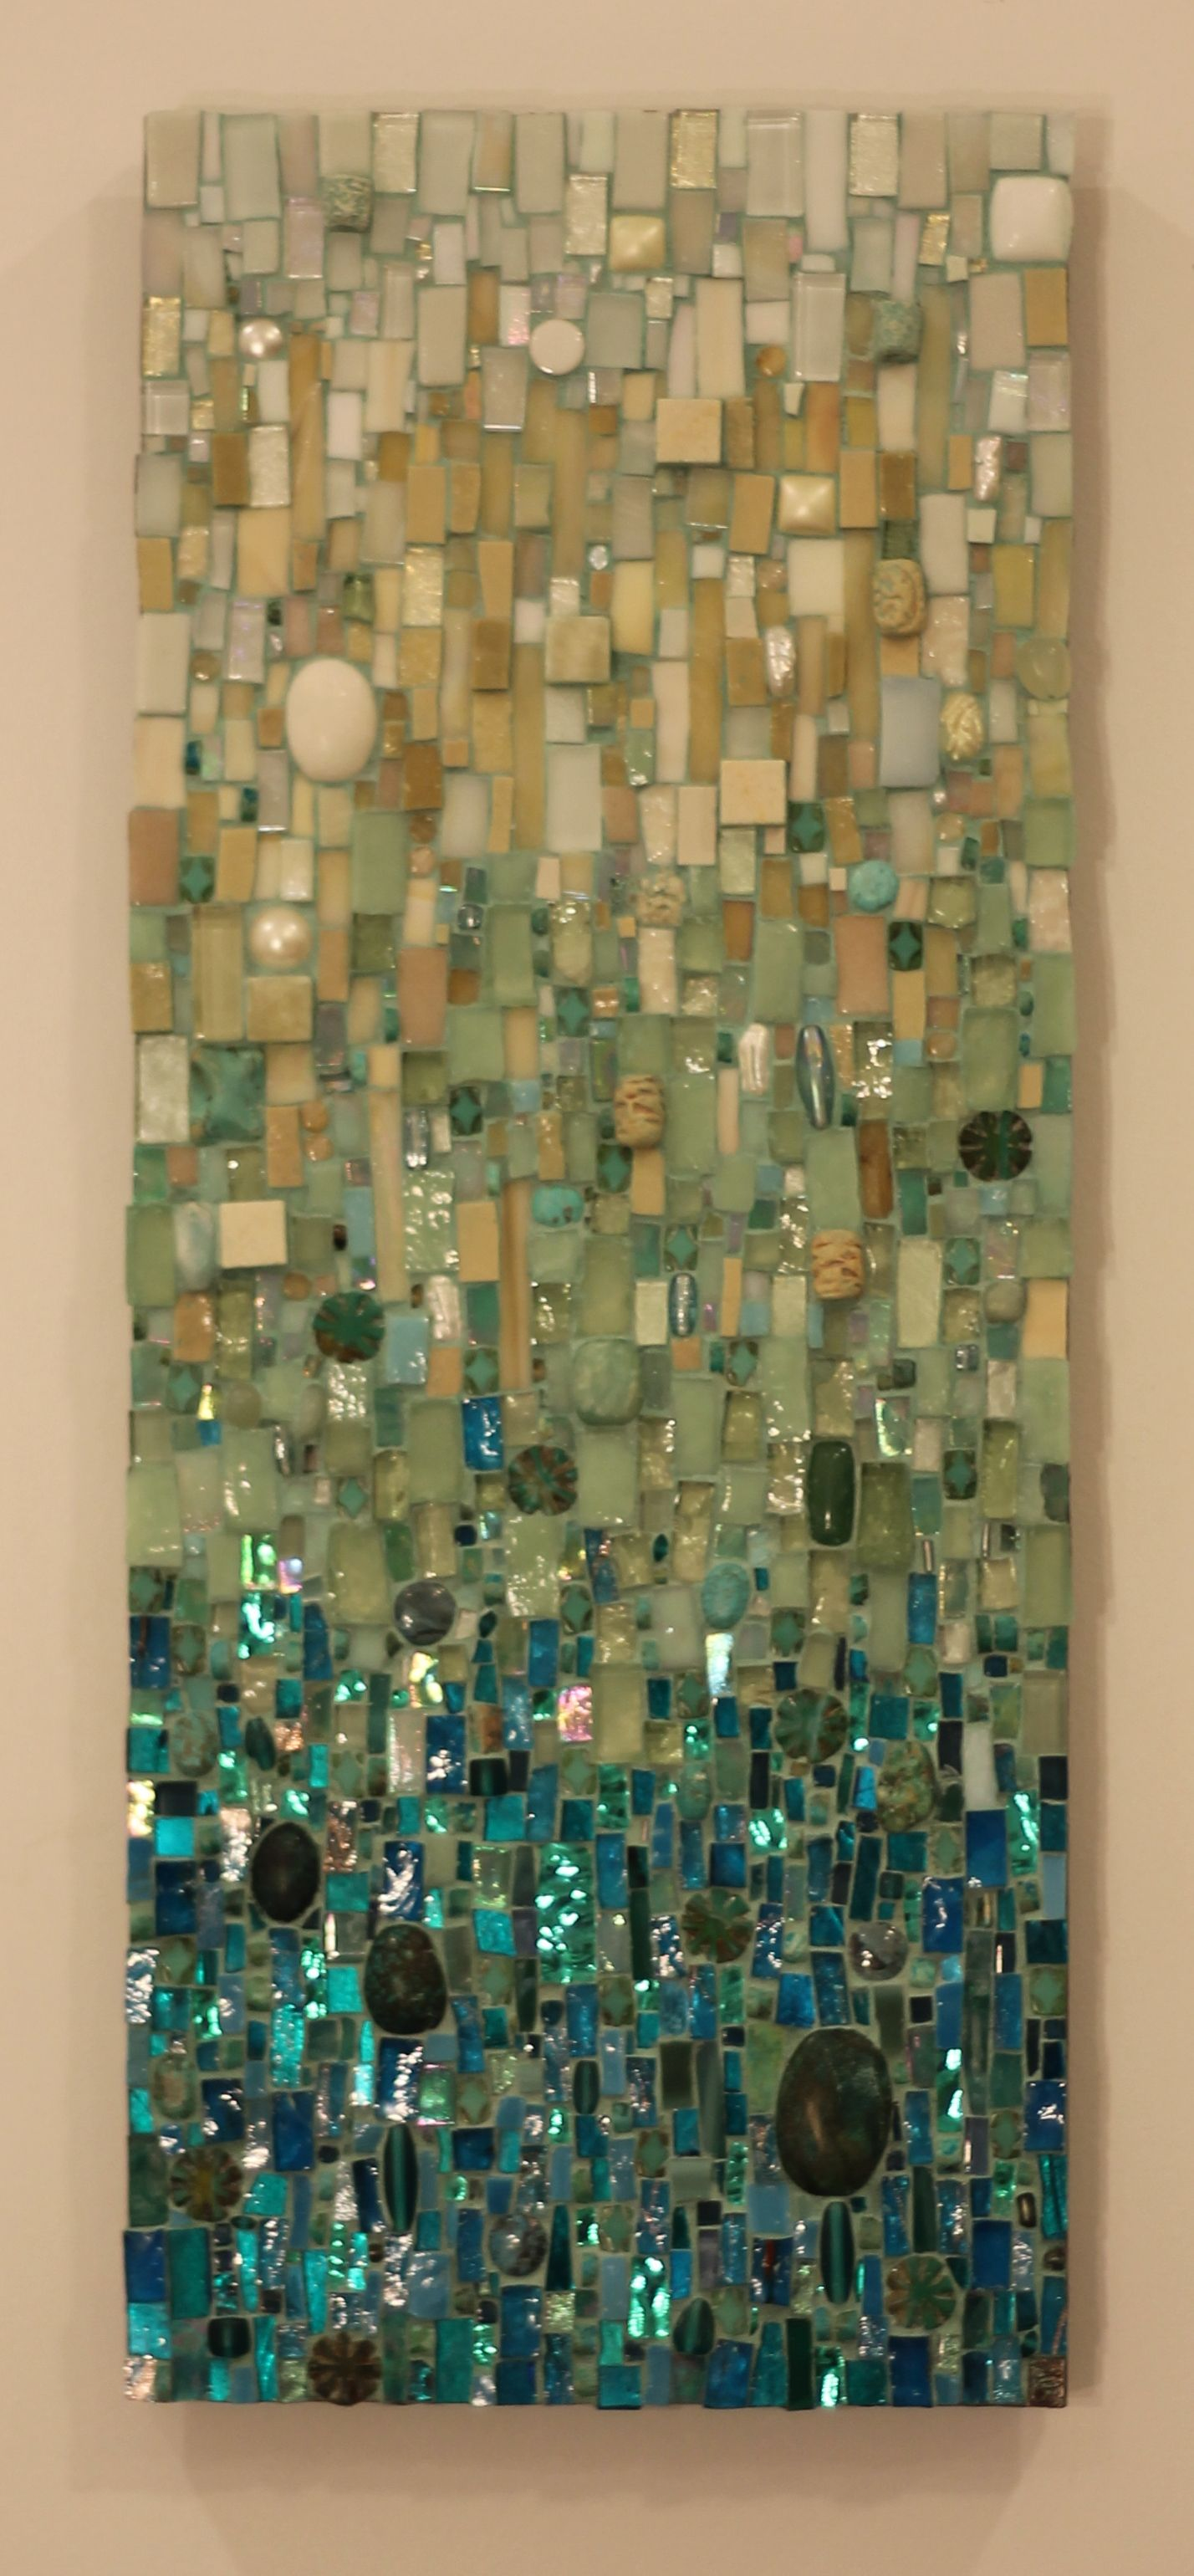 Custom mosaic art by Ariel Shoemaker It